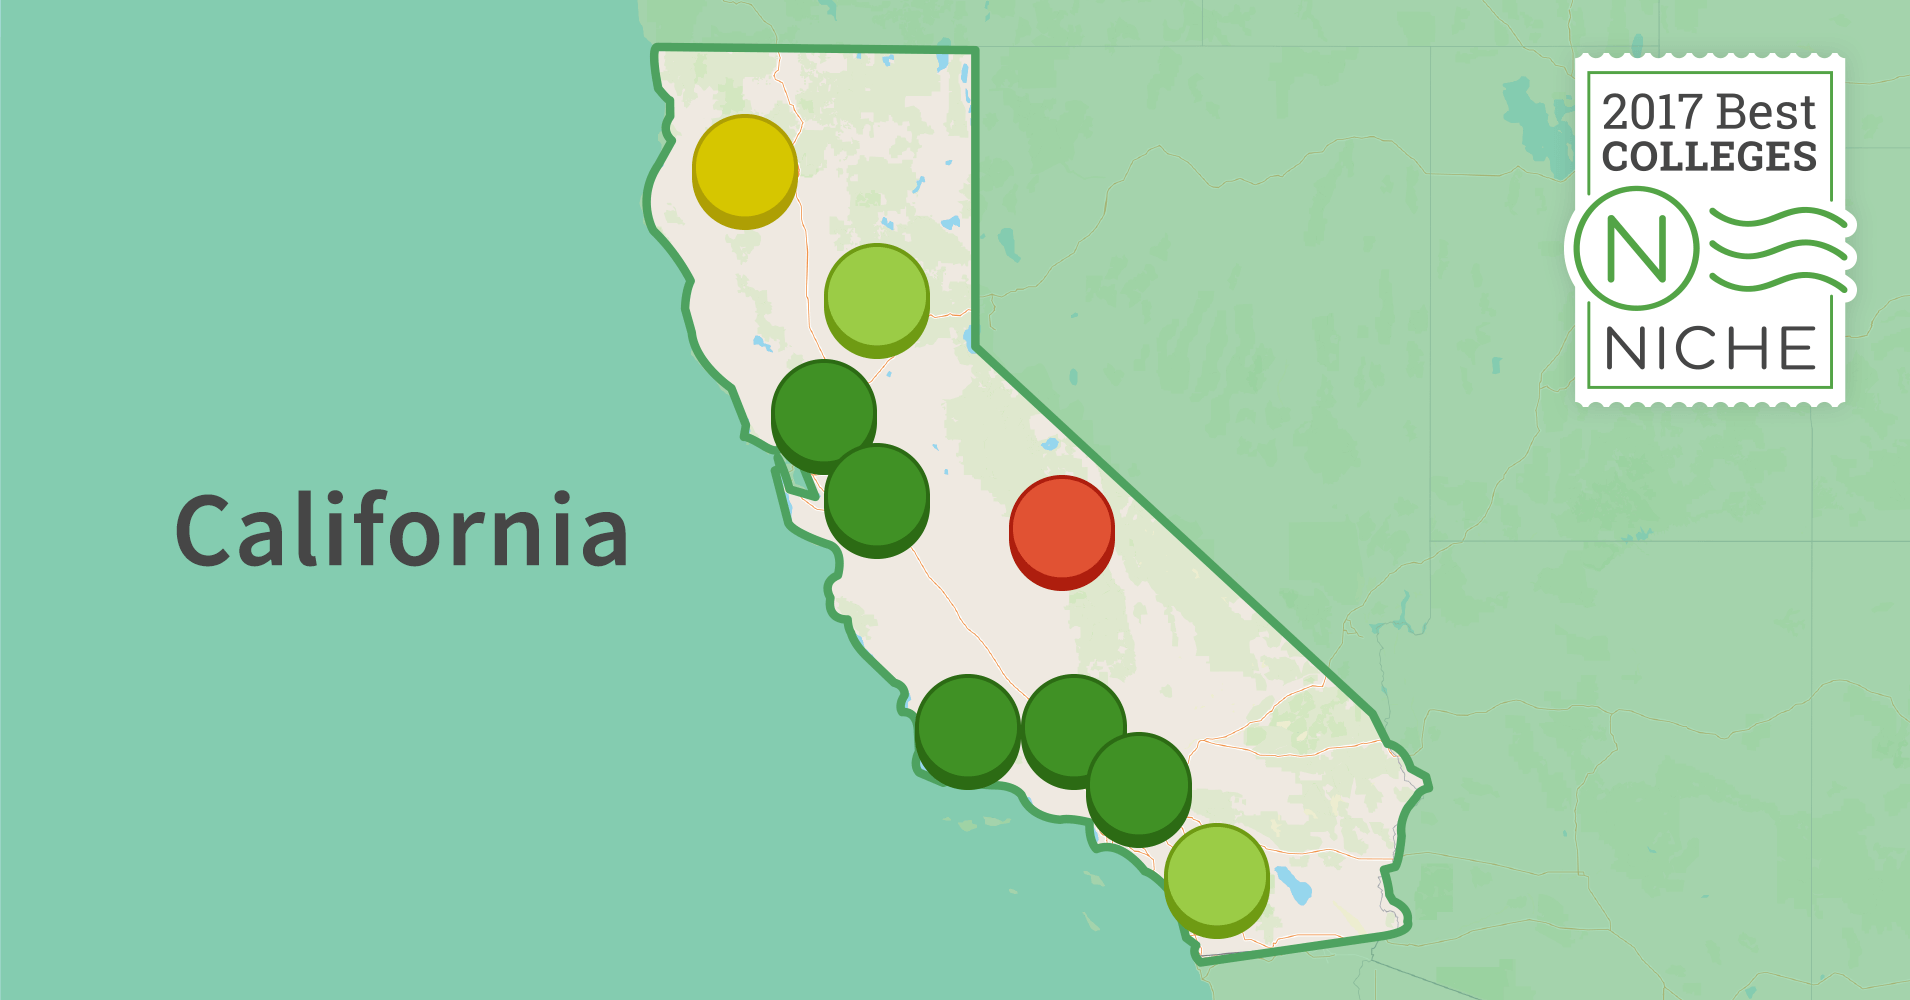 hardest colleges to get into in california niche